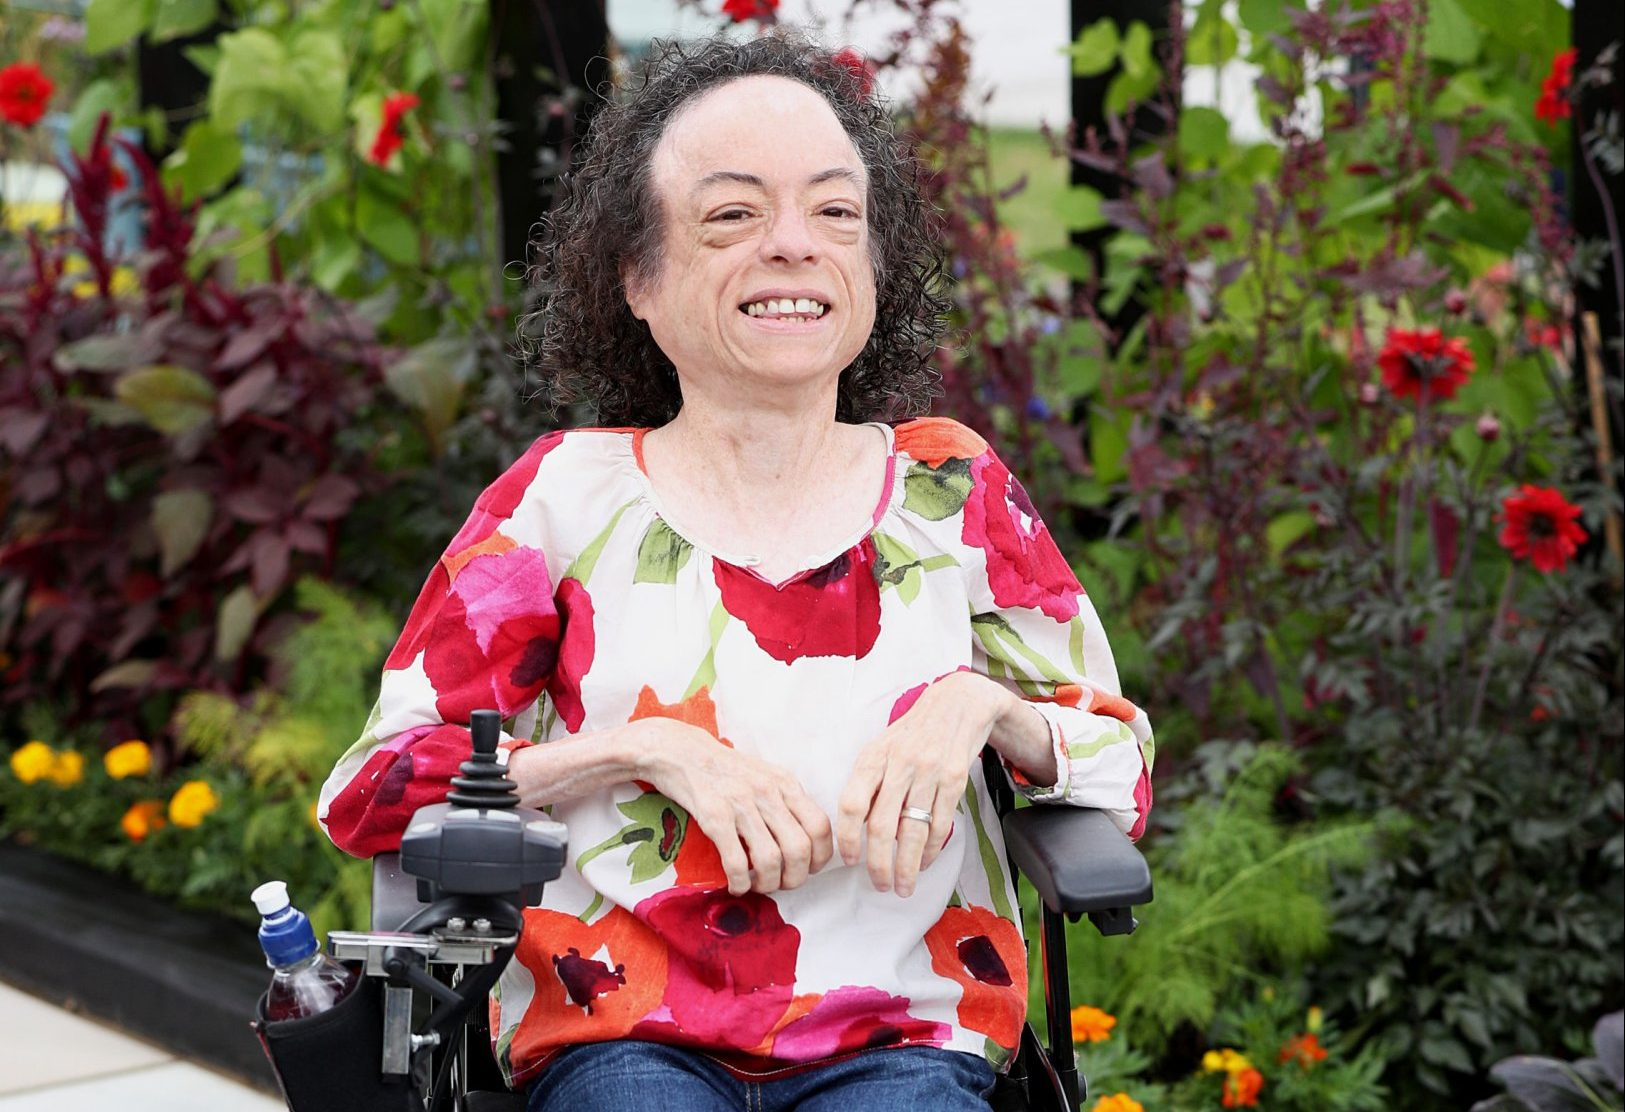 Silent Witness actress Liz Carr says her attack was 'frightening' but she is 'relatively unscathed'